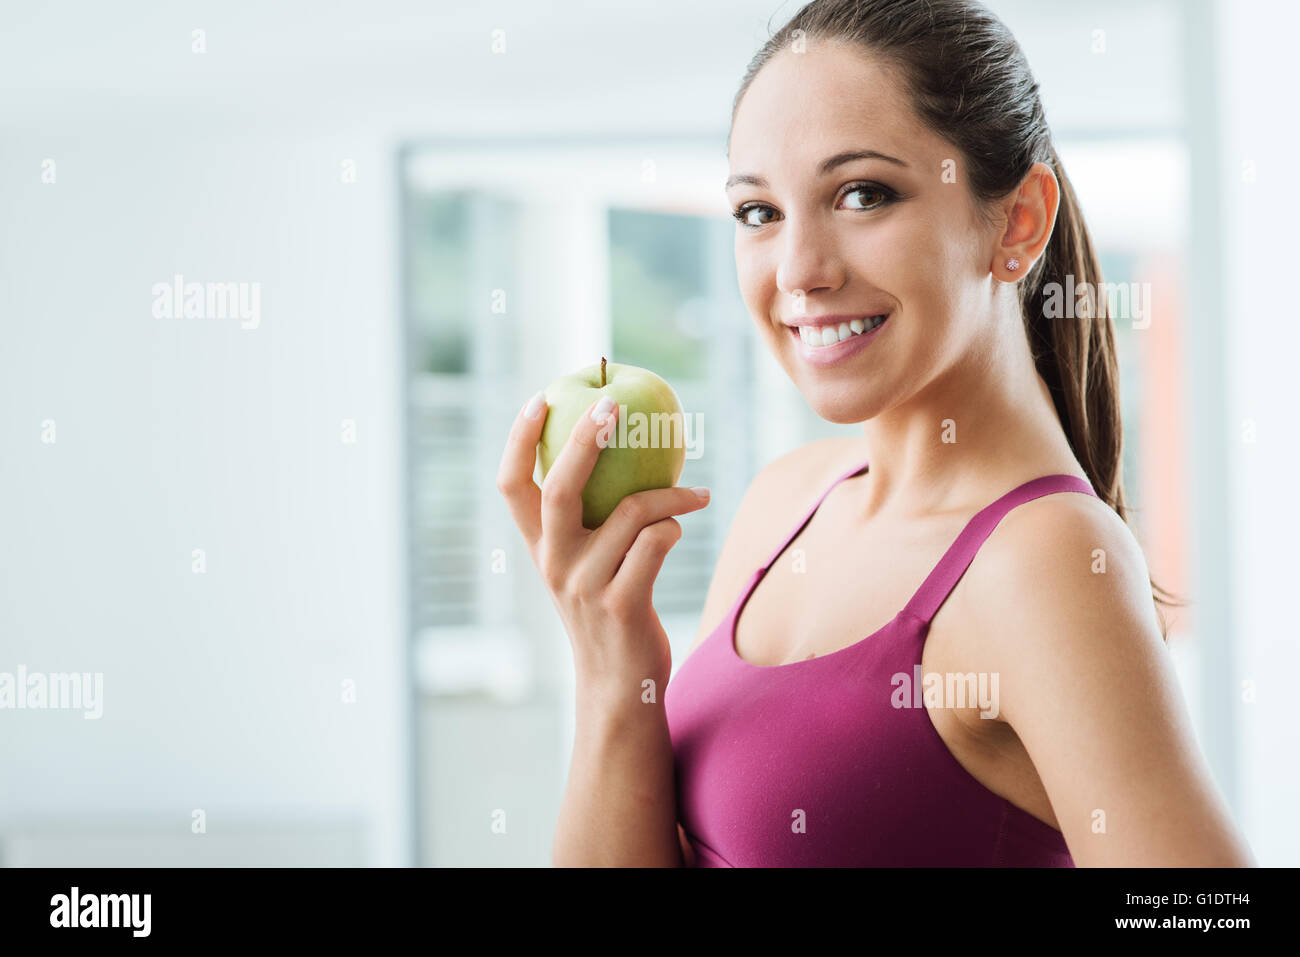 Slim young woman holding an apple and smiling at camera, la saine alimentation et la perte de poids concept Photo Stock